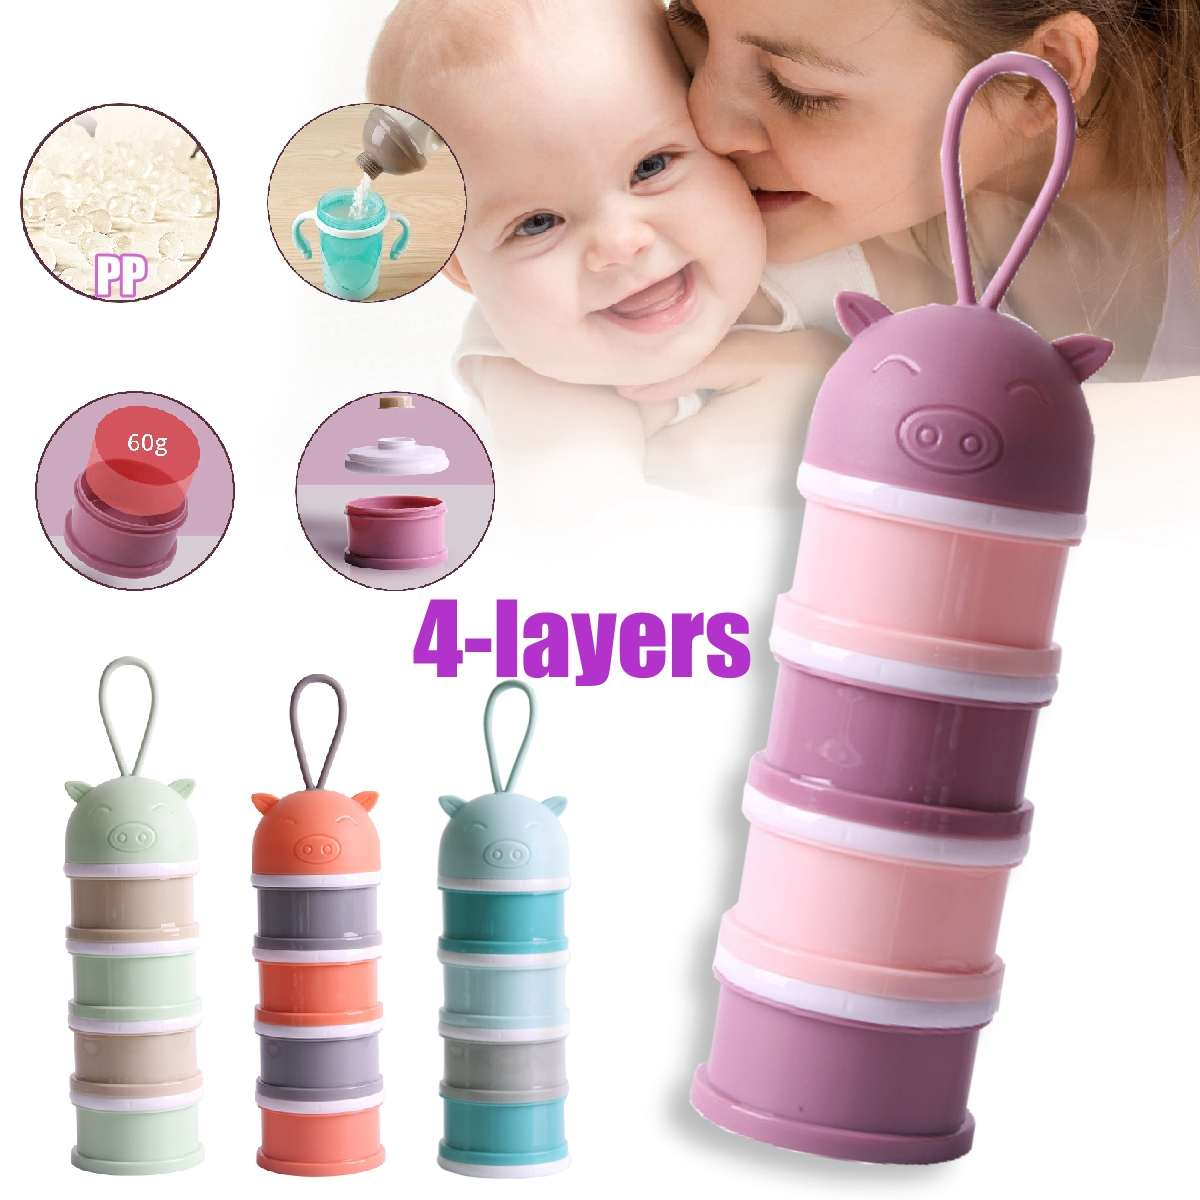 4 Layer Cute Style Portable Baby Food Storage Box Essential Cereal Cartoon Milk Powder Boxes Toddle Kids Formula Milk Container